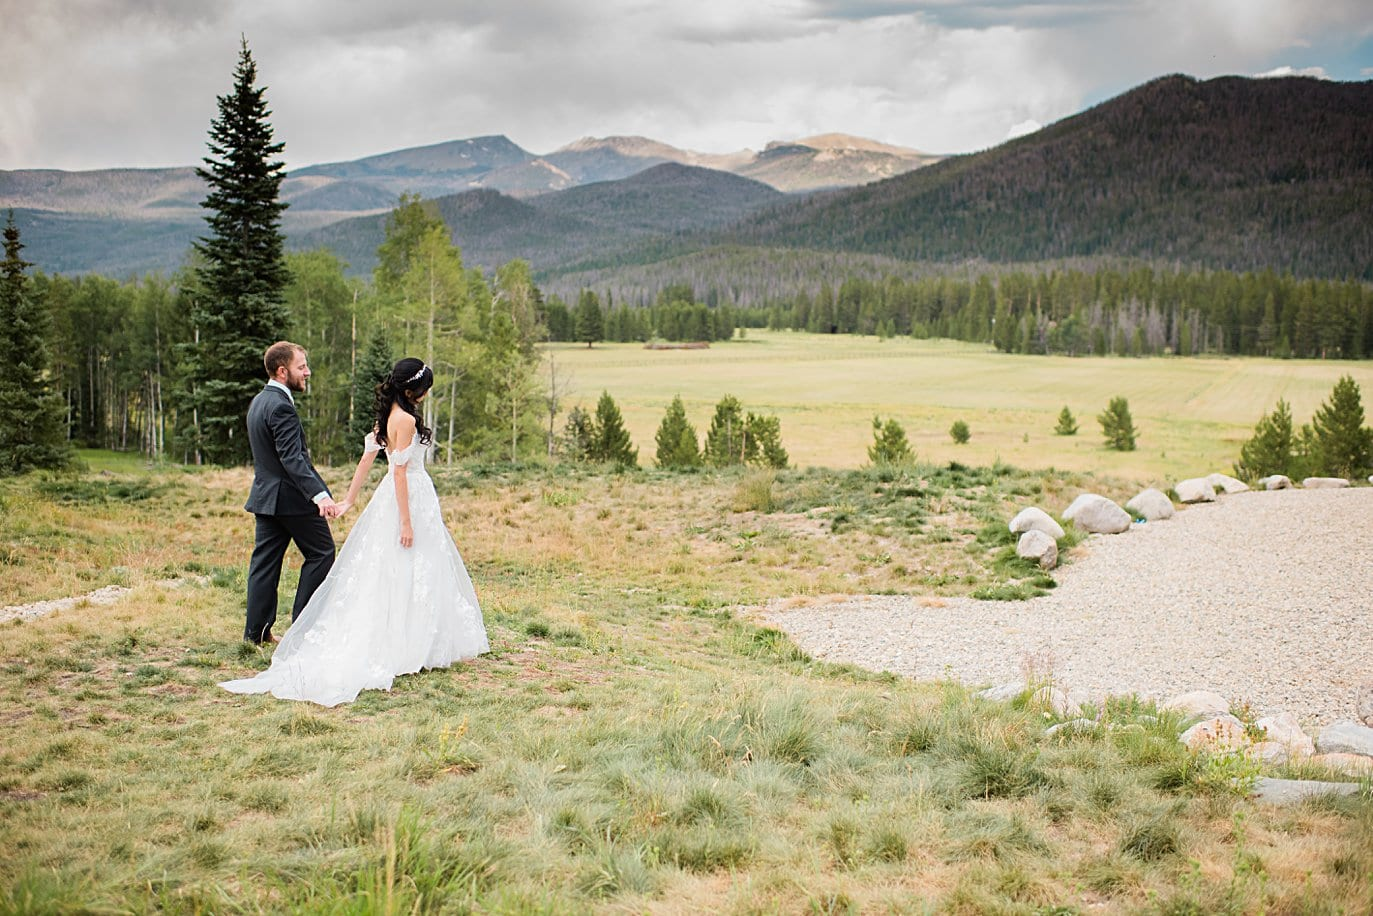 bride and groom walk hand in hand to ceremony at intimate Grand Lake wedding by Grand Lake wedding photographer Jennie Crate